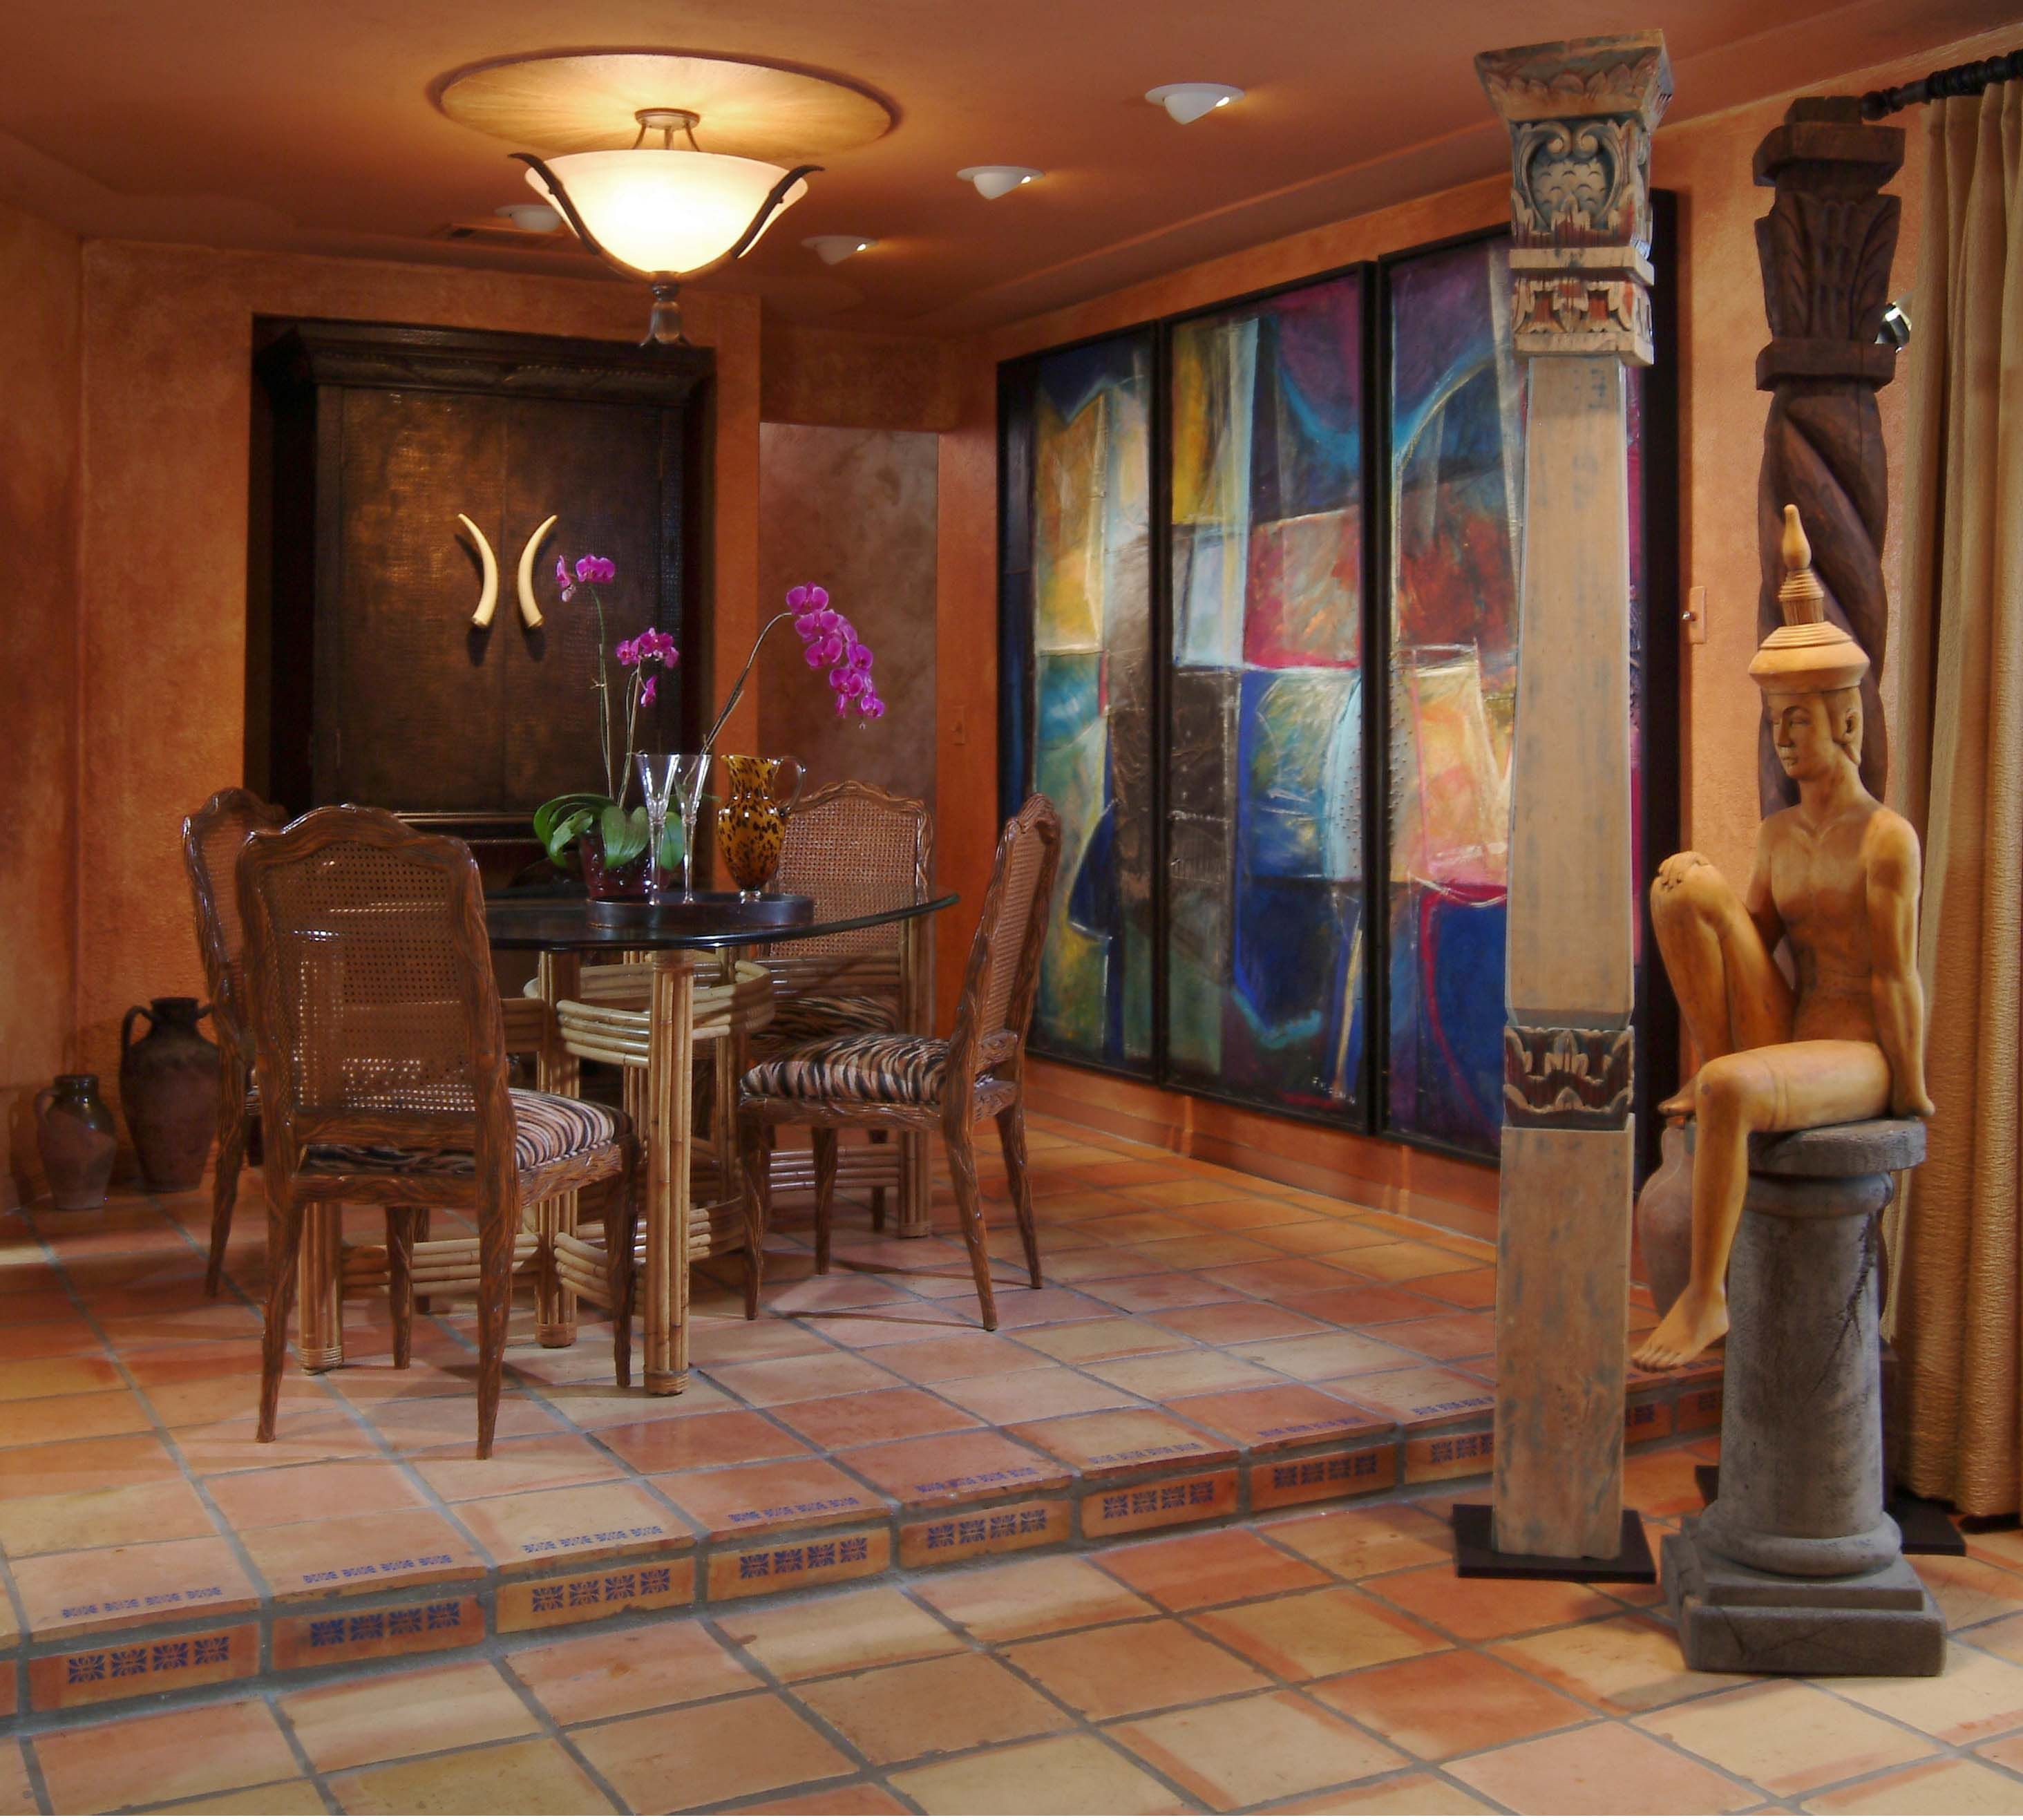 2014 Home Decorating Color Trends Moroccan Dining Room Trend Interior With Ambient Lighting And Colorful Accent Wall